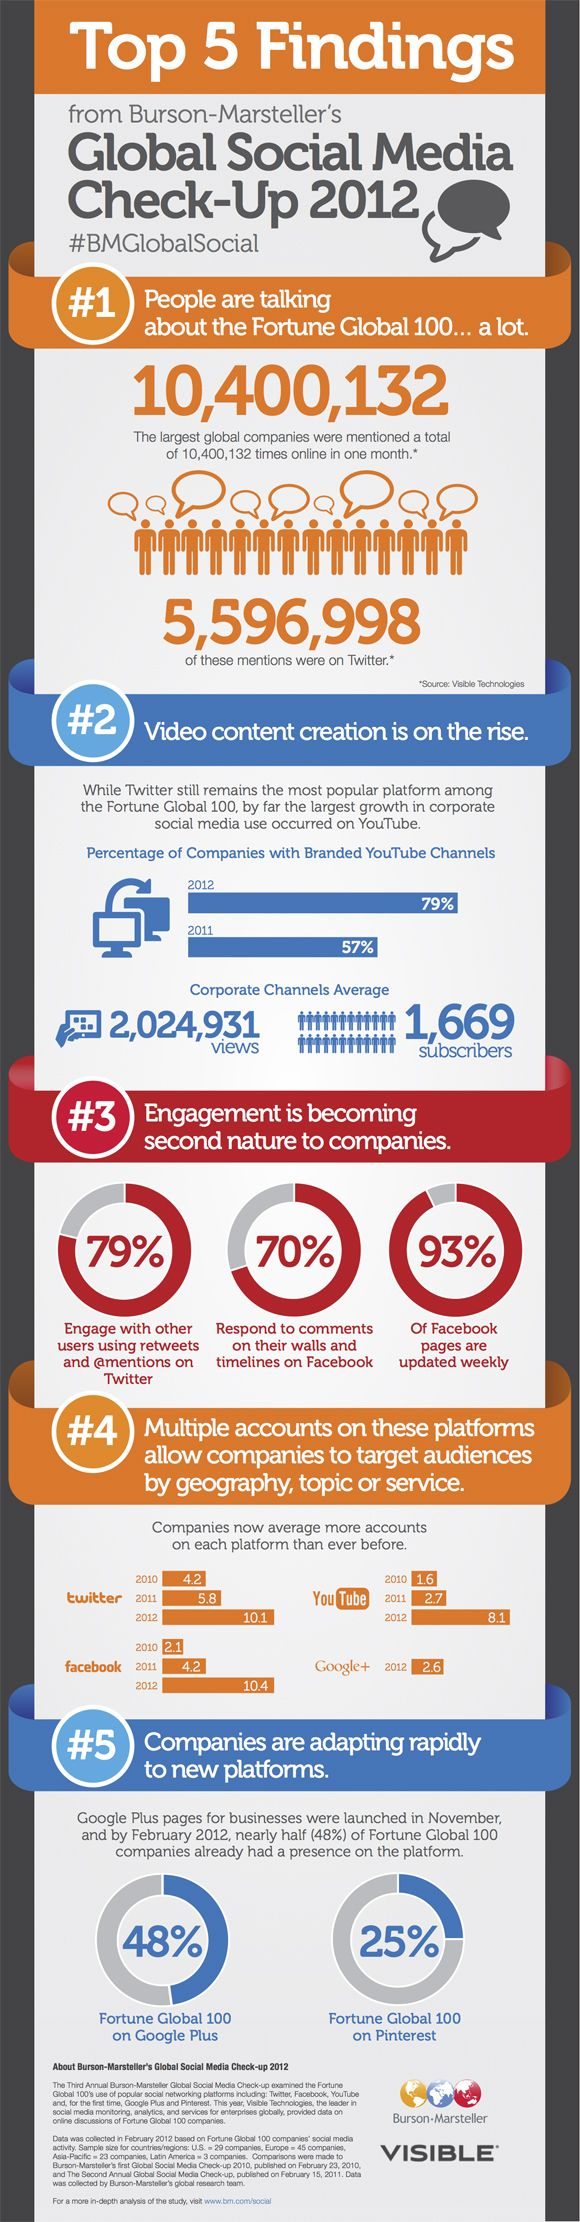 Twitter beats YouTube and Facebook as top social platform among Fortune 100 firms [infographic    Read more: http://wallblog.co.uk/2012/07/19/twitter-beats-youtube-and-facebook-as-top-social-platform-among-fortune-100-firms-infographic: Social Network, Media Checkup, Check Up 2012, Social Media, Media Check Up, 2012 Infographic, Global Social, Media Infographic, Global 100